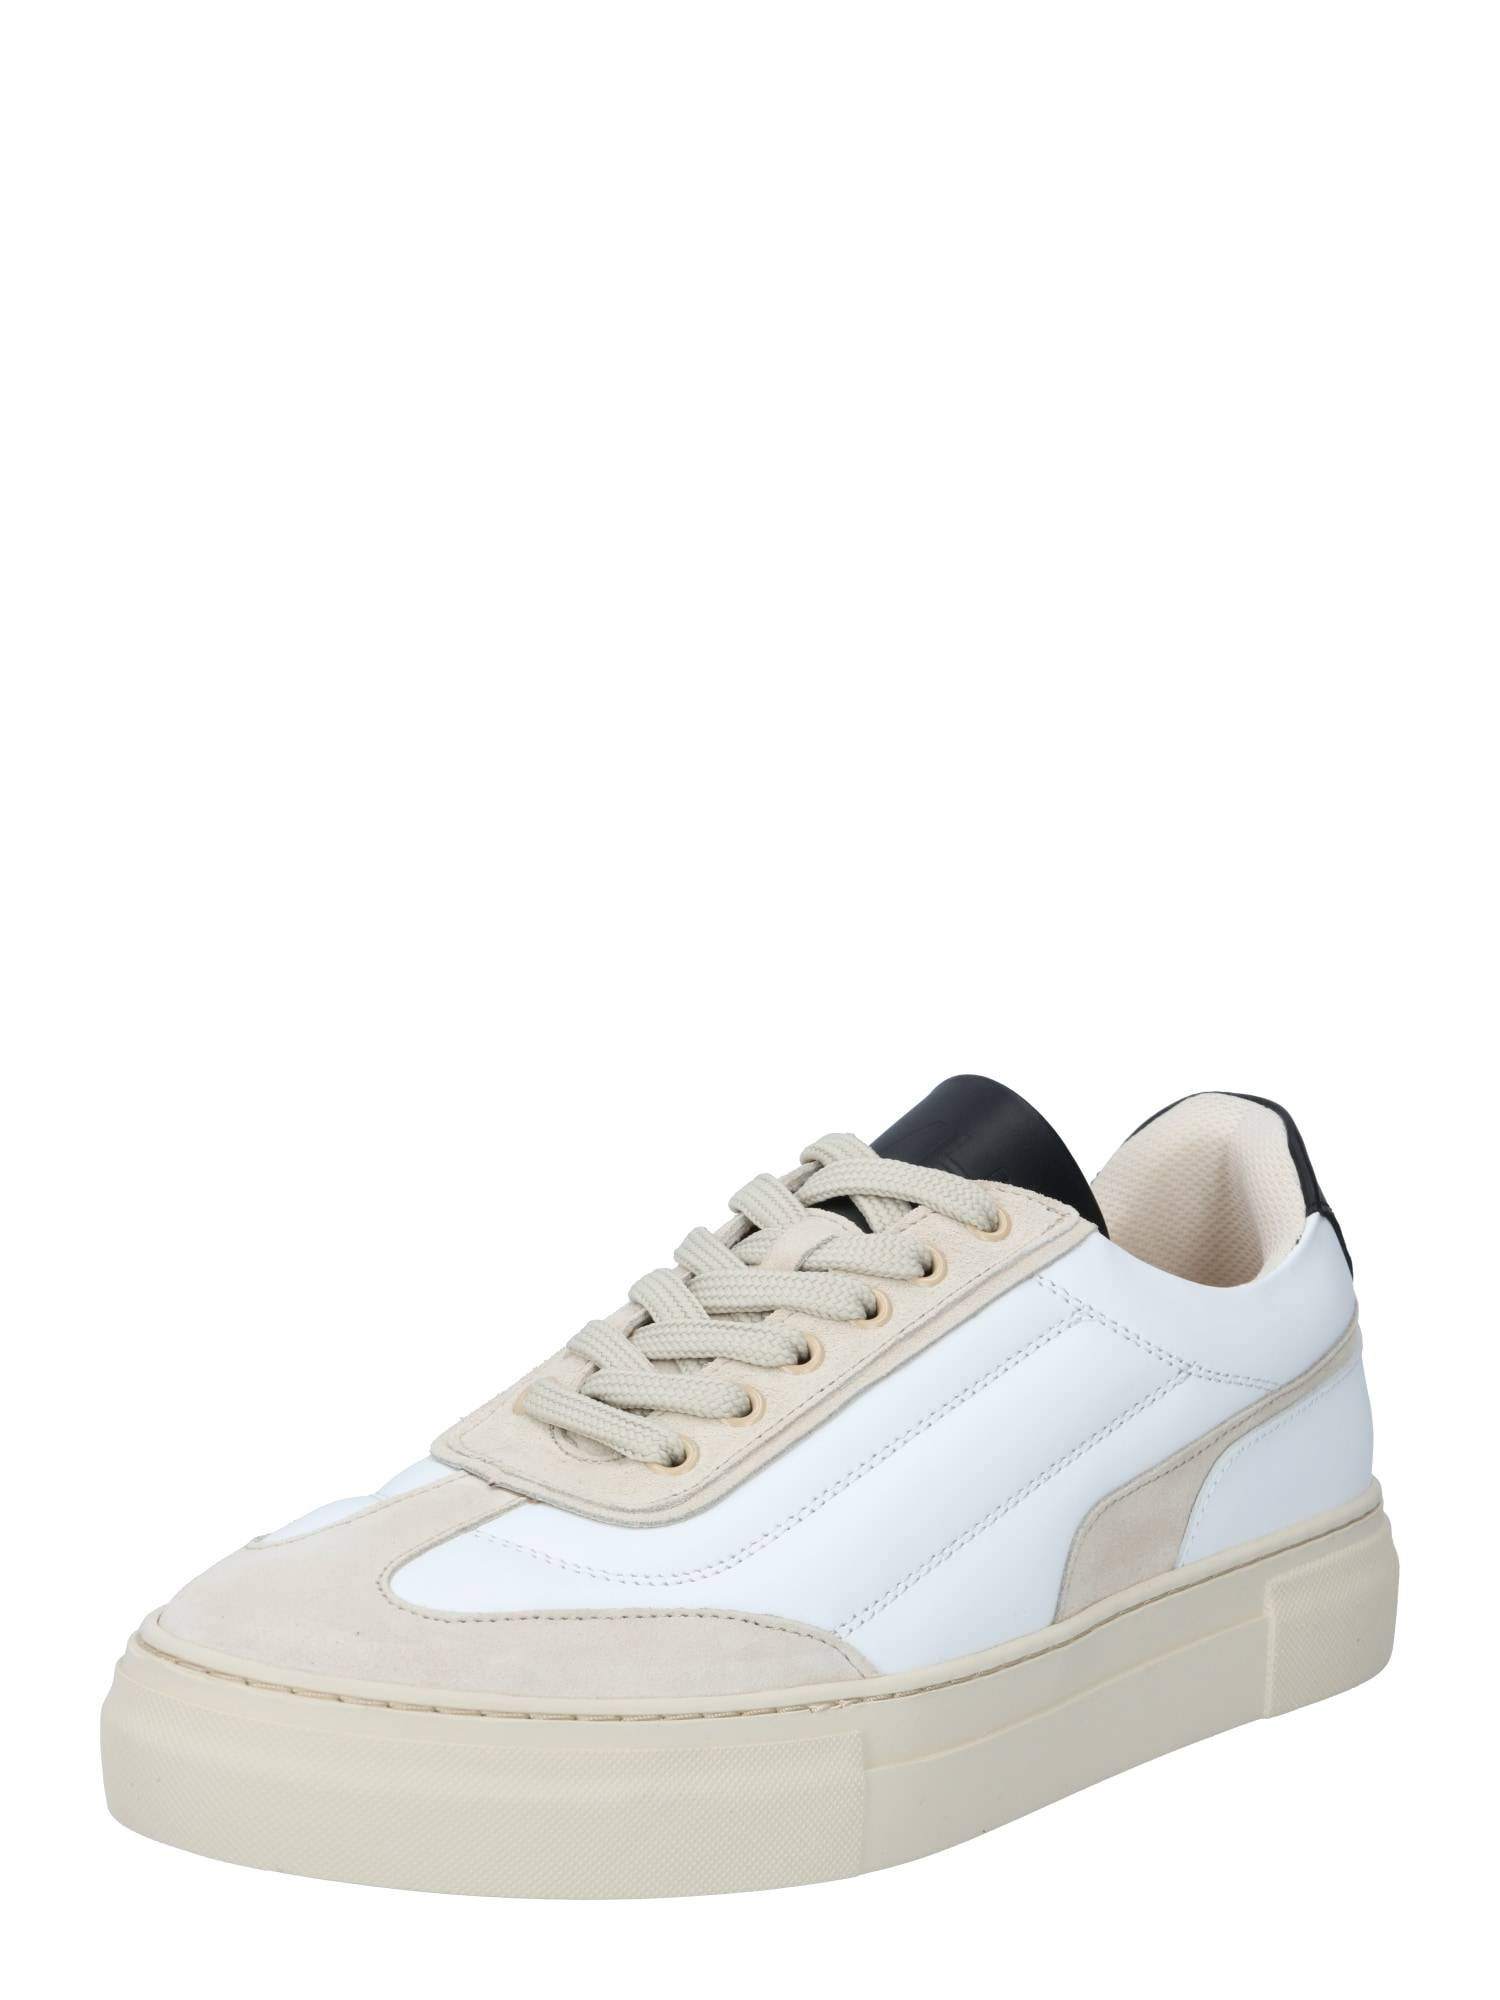 SELECTED HOMME Baskets basses 'SLHDAVID CHUNKY QUILT LEATHER TRAINER B'  - Blanc, Beige - Taille: 44 - male